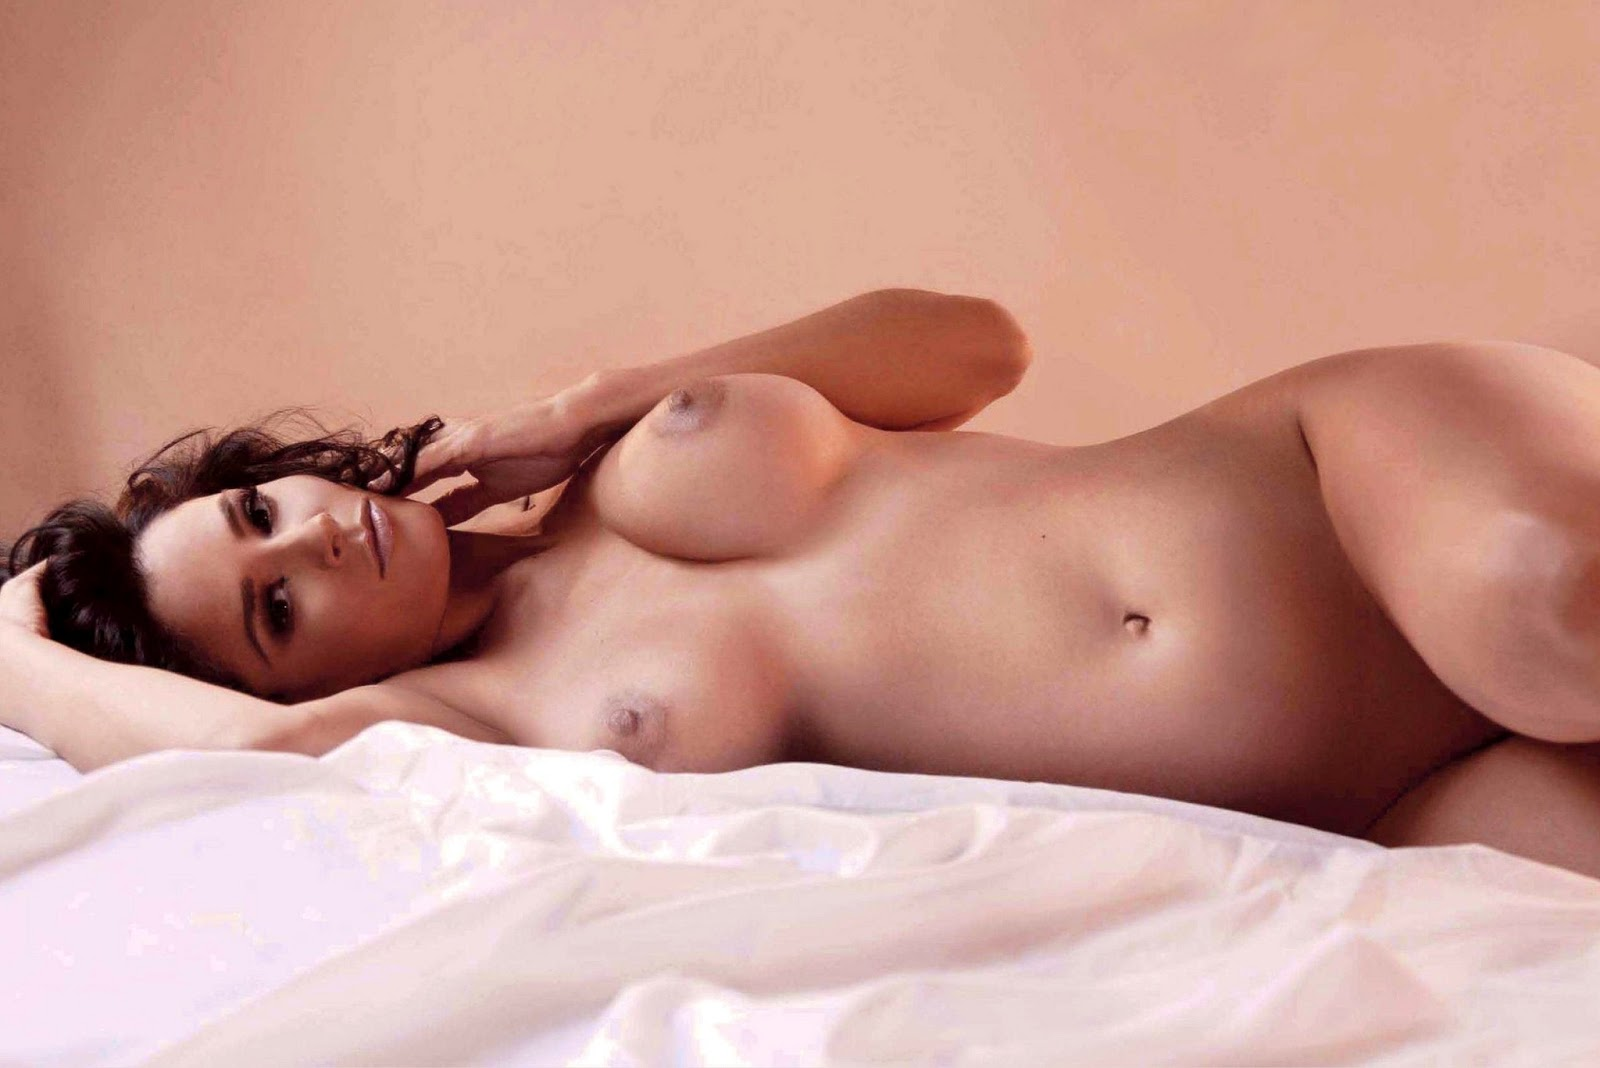 Pregnant playboy models nude